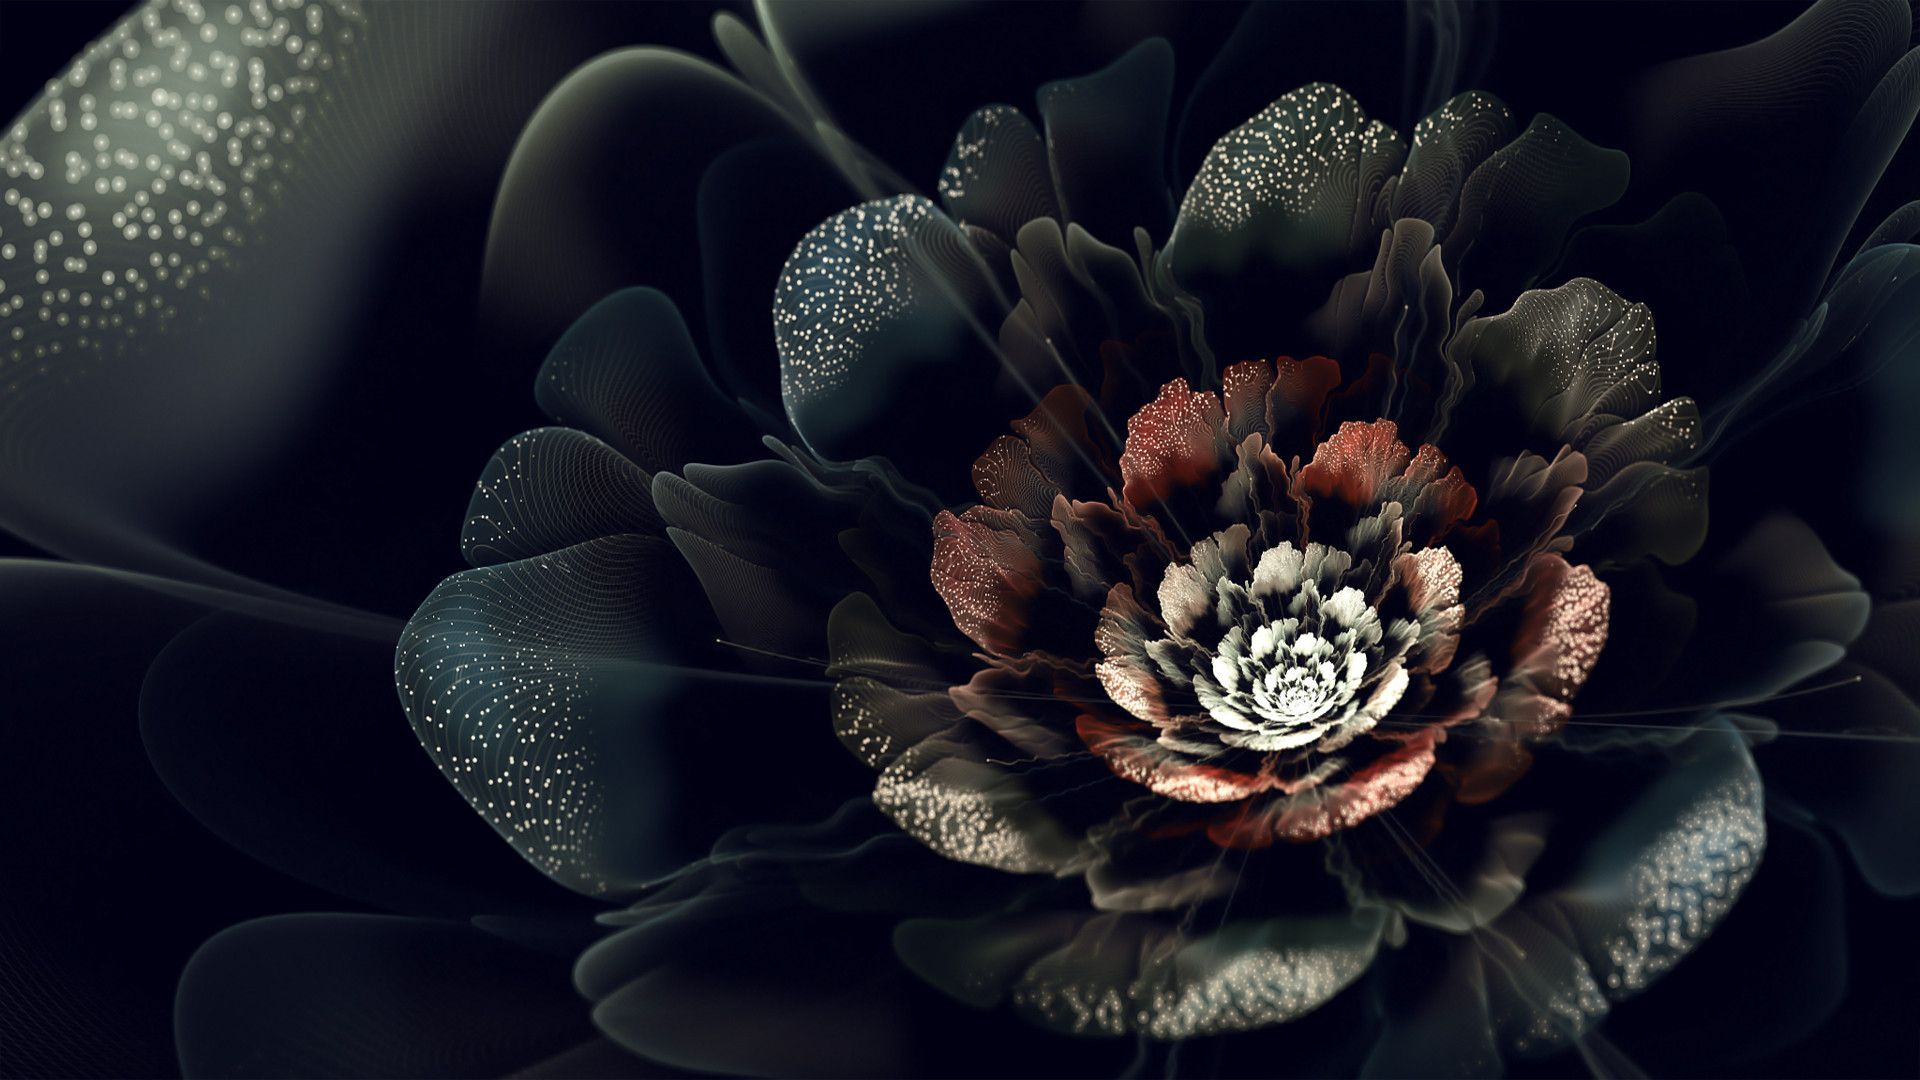 black rose flower wallpaper find best latest black rose flower wallpaper for your pc desktop background